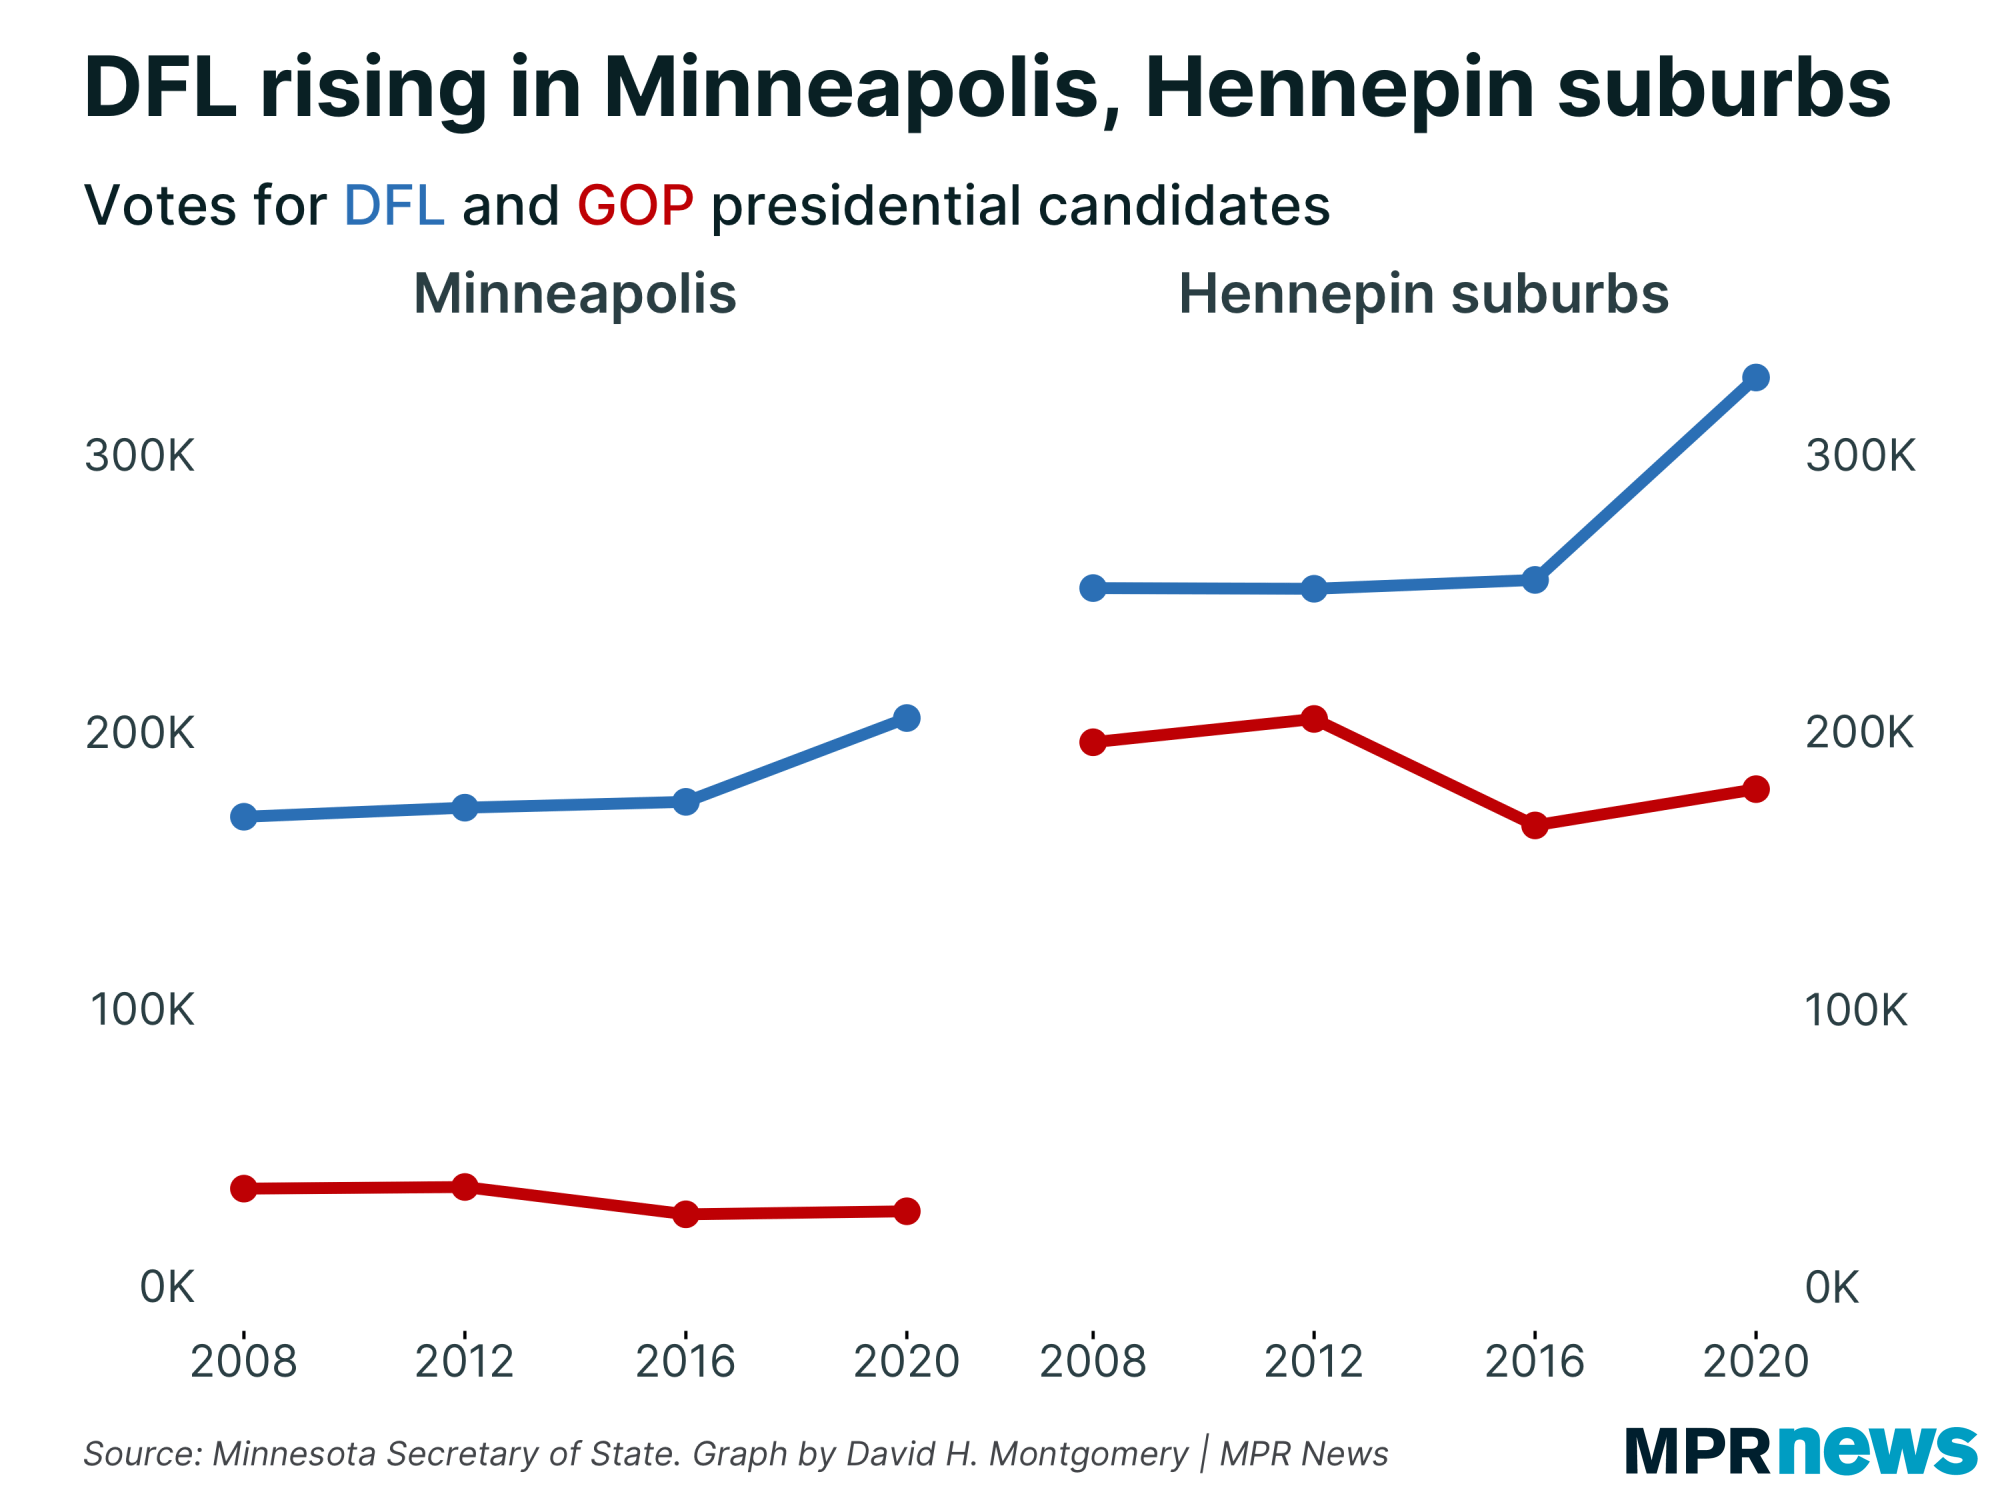 Line graph: DFL rising in Minneapolis, Hennepin County suburbs